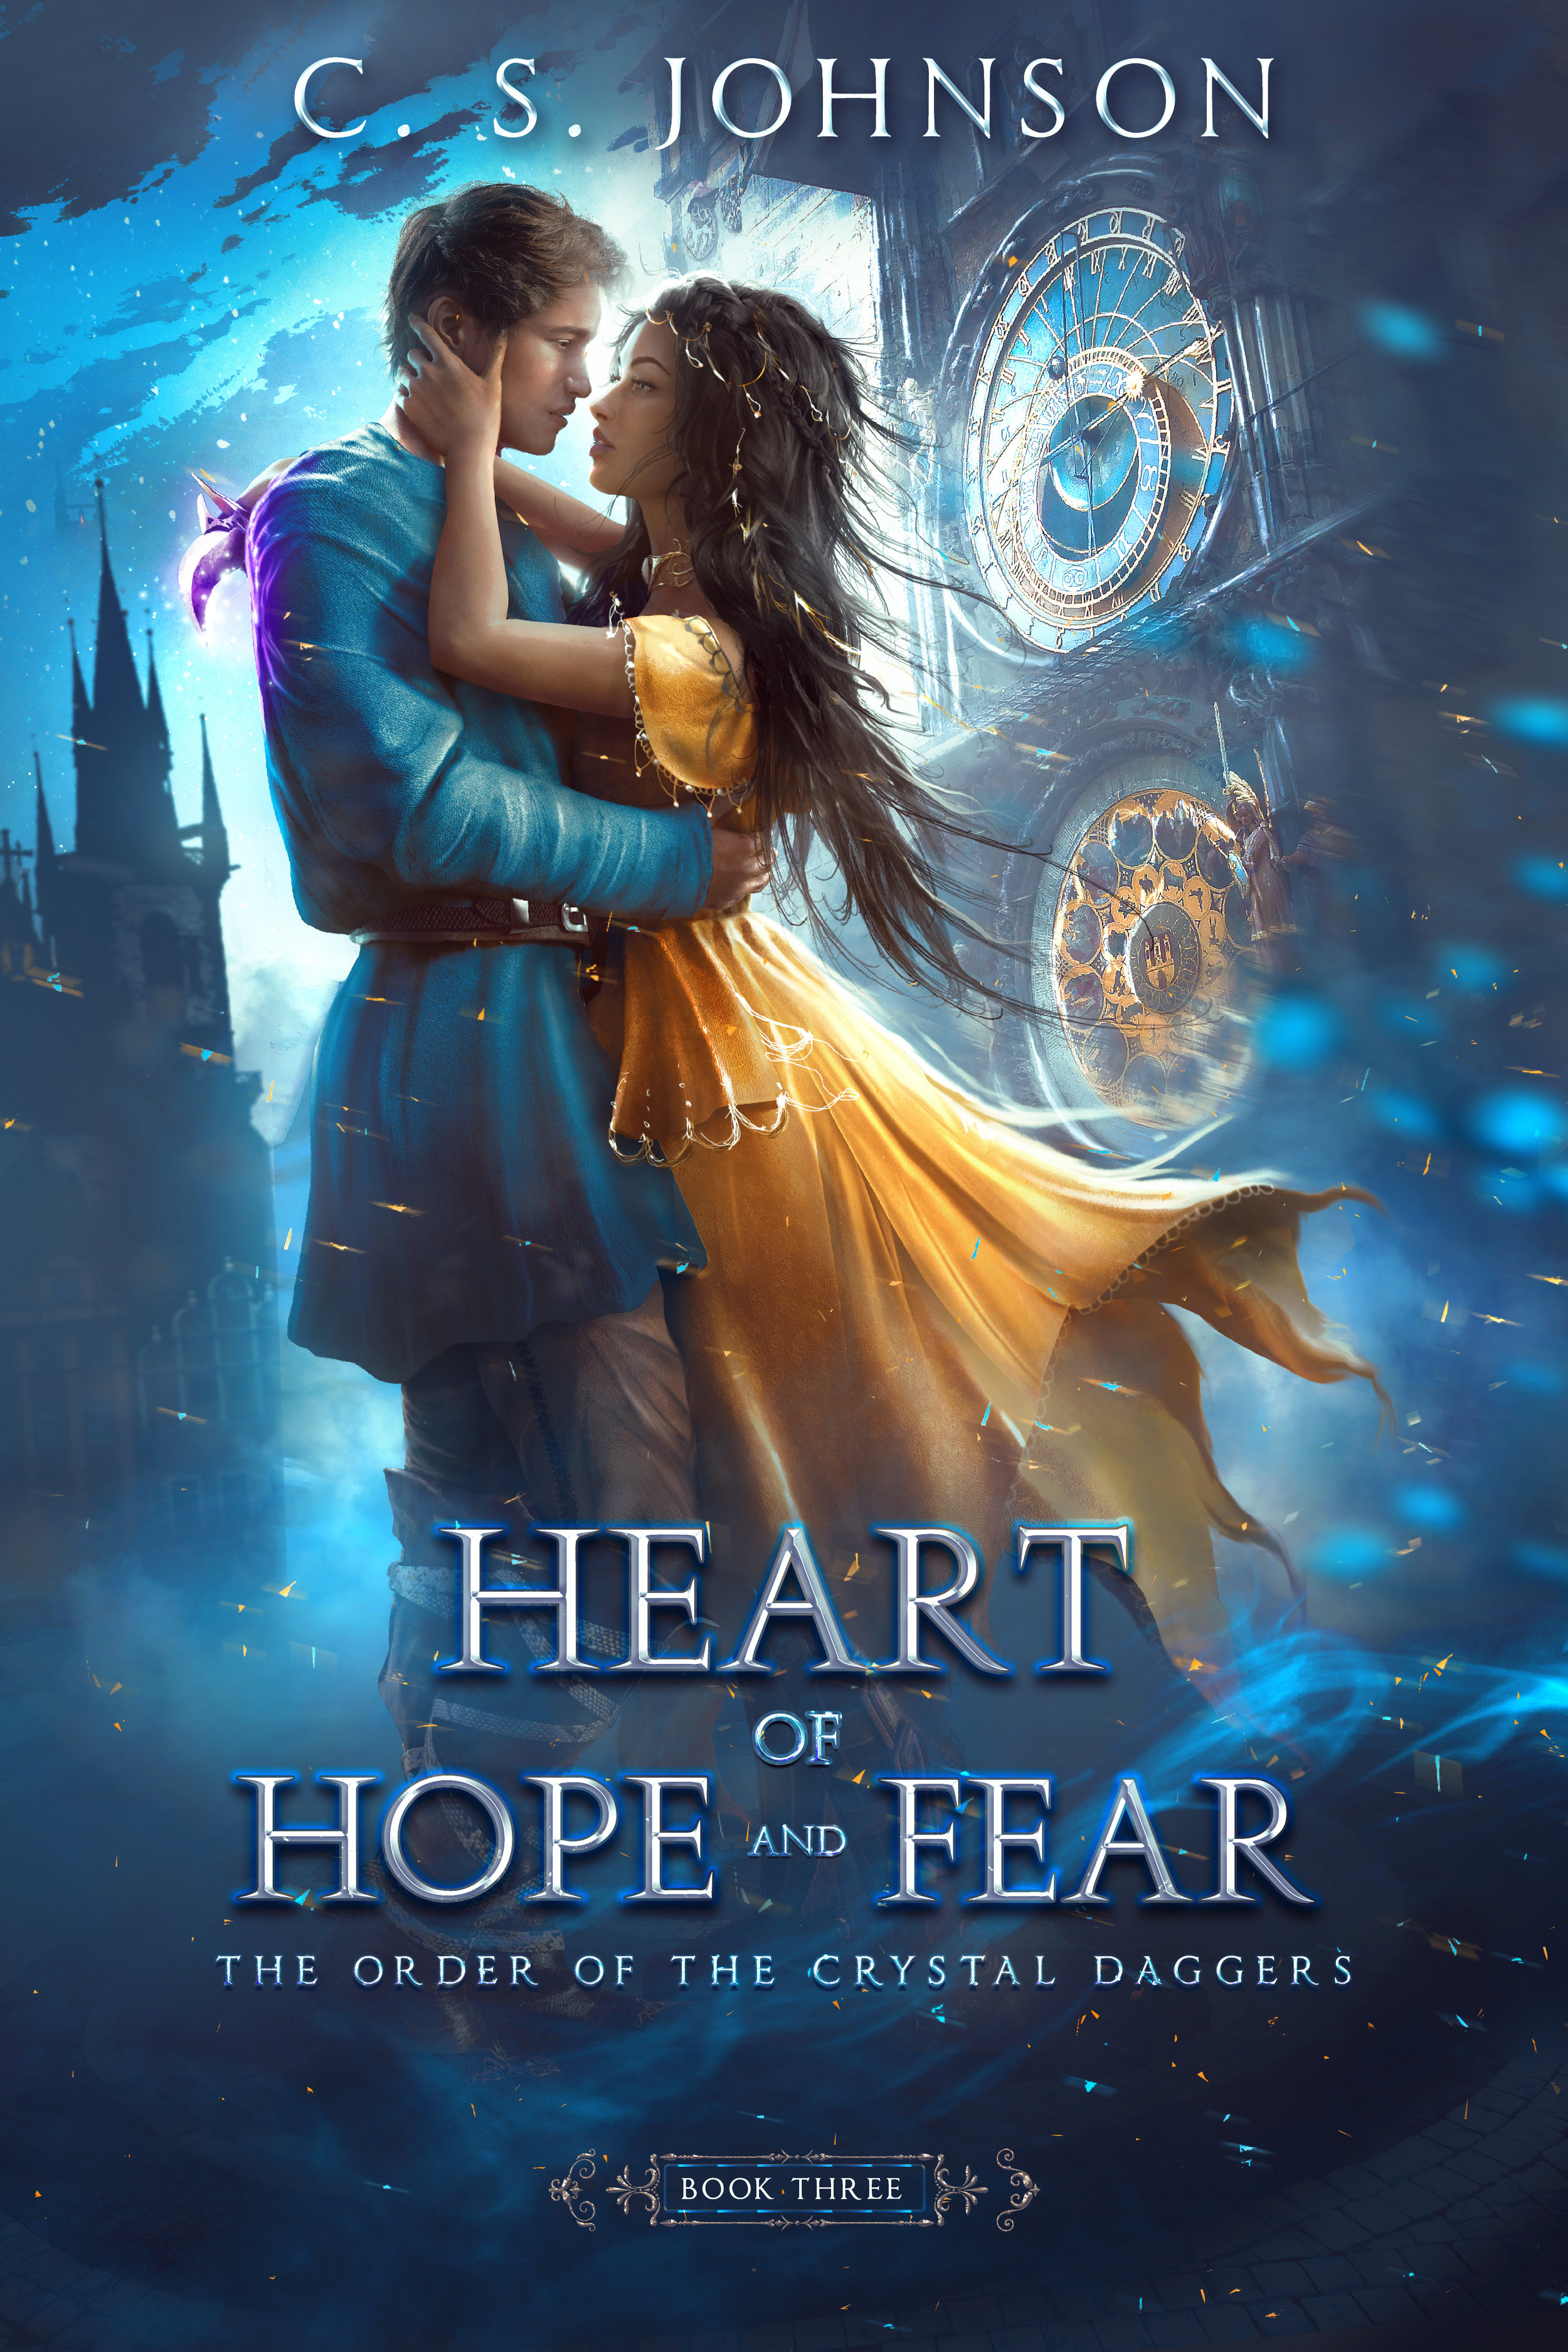 3 Heart of Hope and Fear cover reveal.jpg